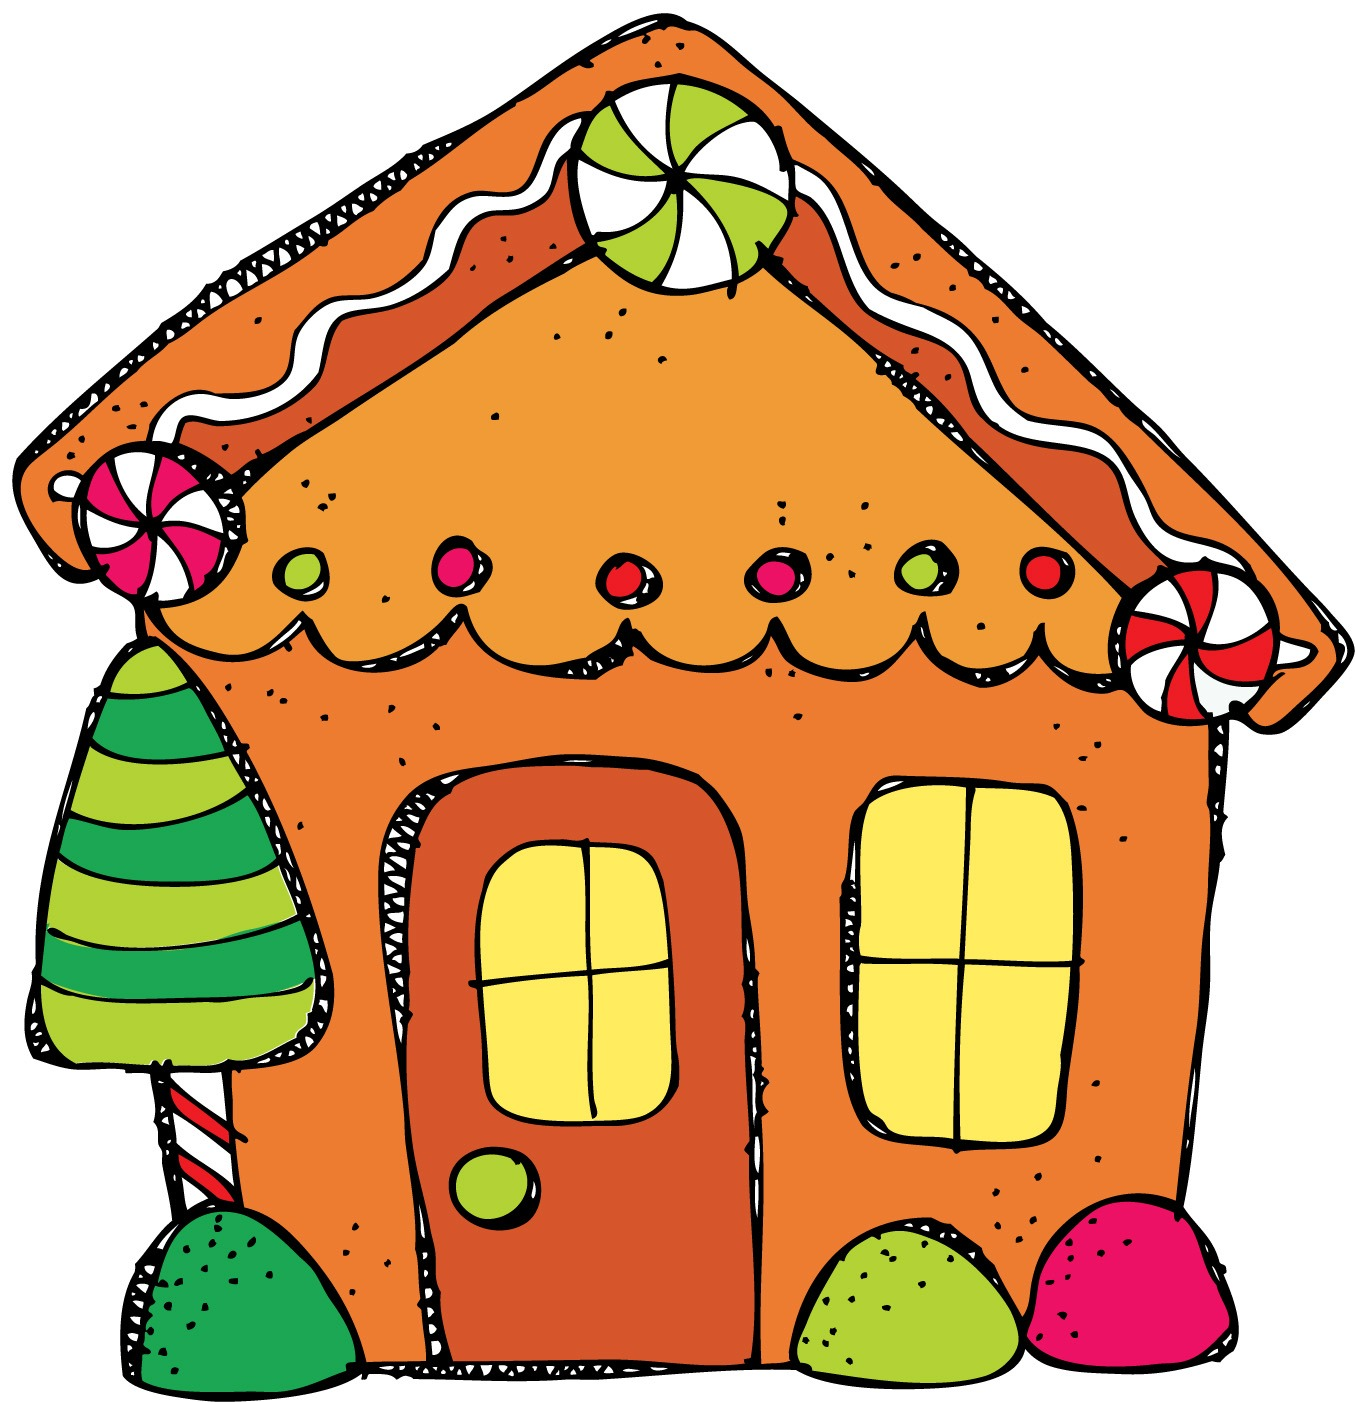 Gingerbread House Clip Art Free Cliparts-Gingerbread House Clip Art Free Cliparts Co-10